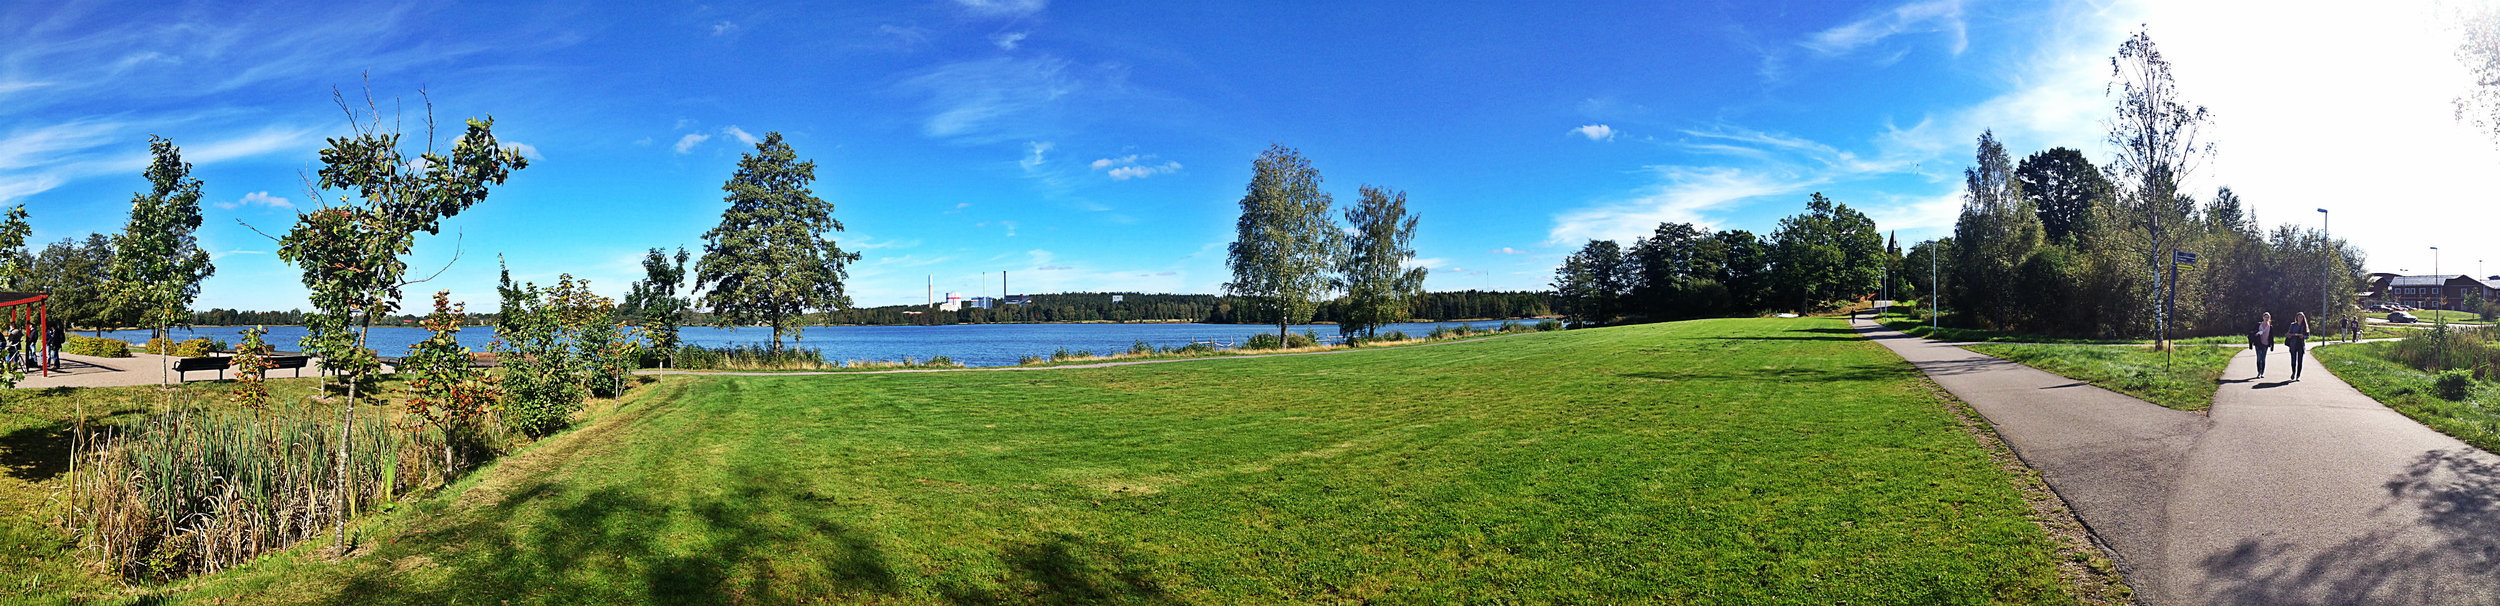 Linnaeus University Panorama | Tall Girl Meets World